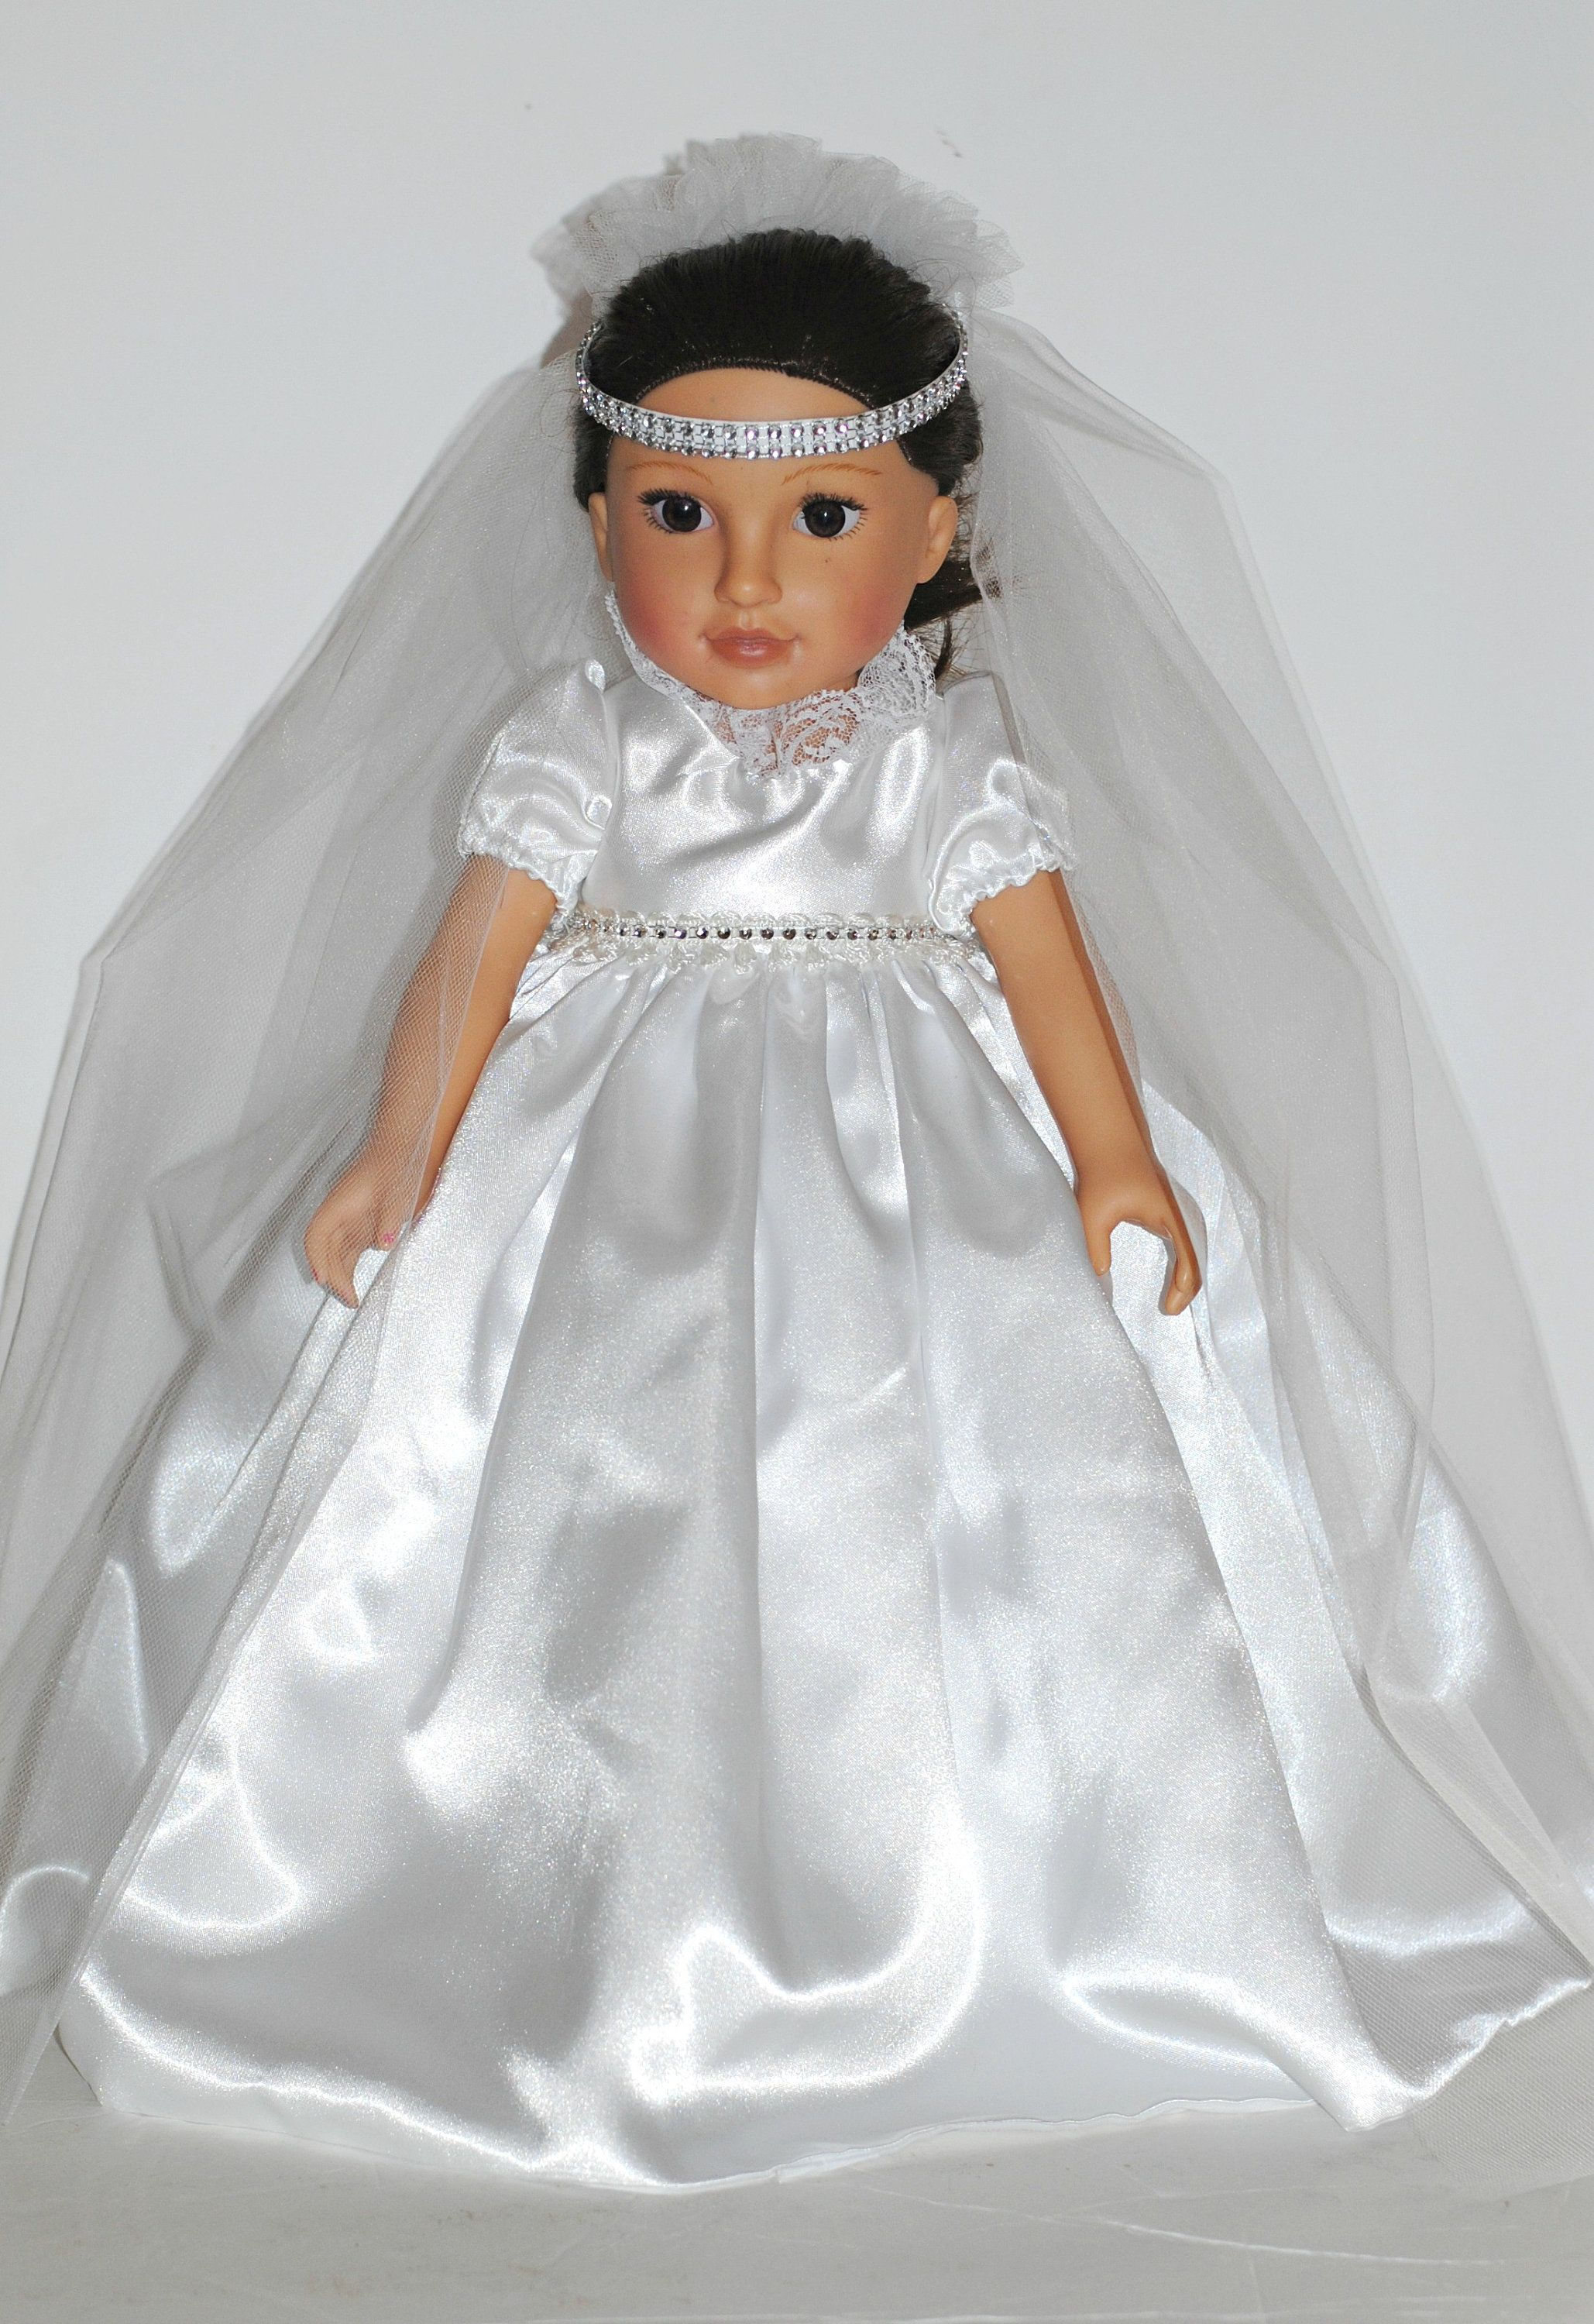 Princess Bride Doll Gown, OOAK White Satin Wedding Dress for 18 inch Dolls, Fits American Girl, Headpiece with Veil, Bouquet, Lace Garter #bridedolls